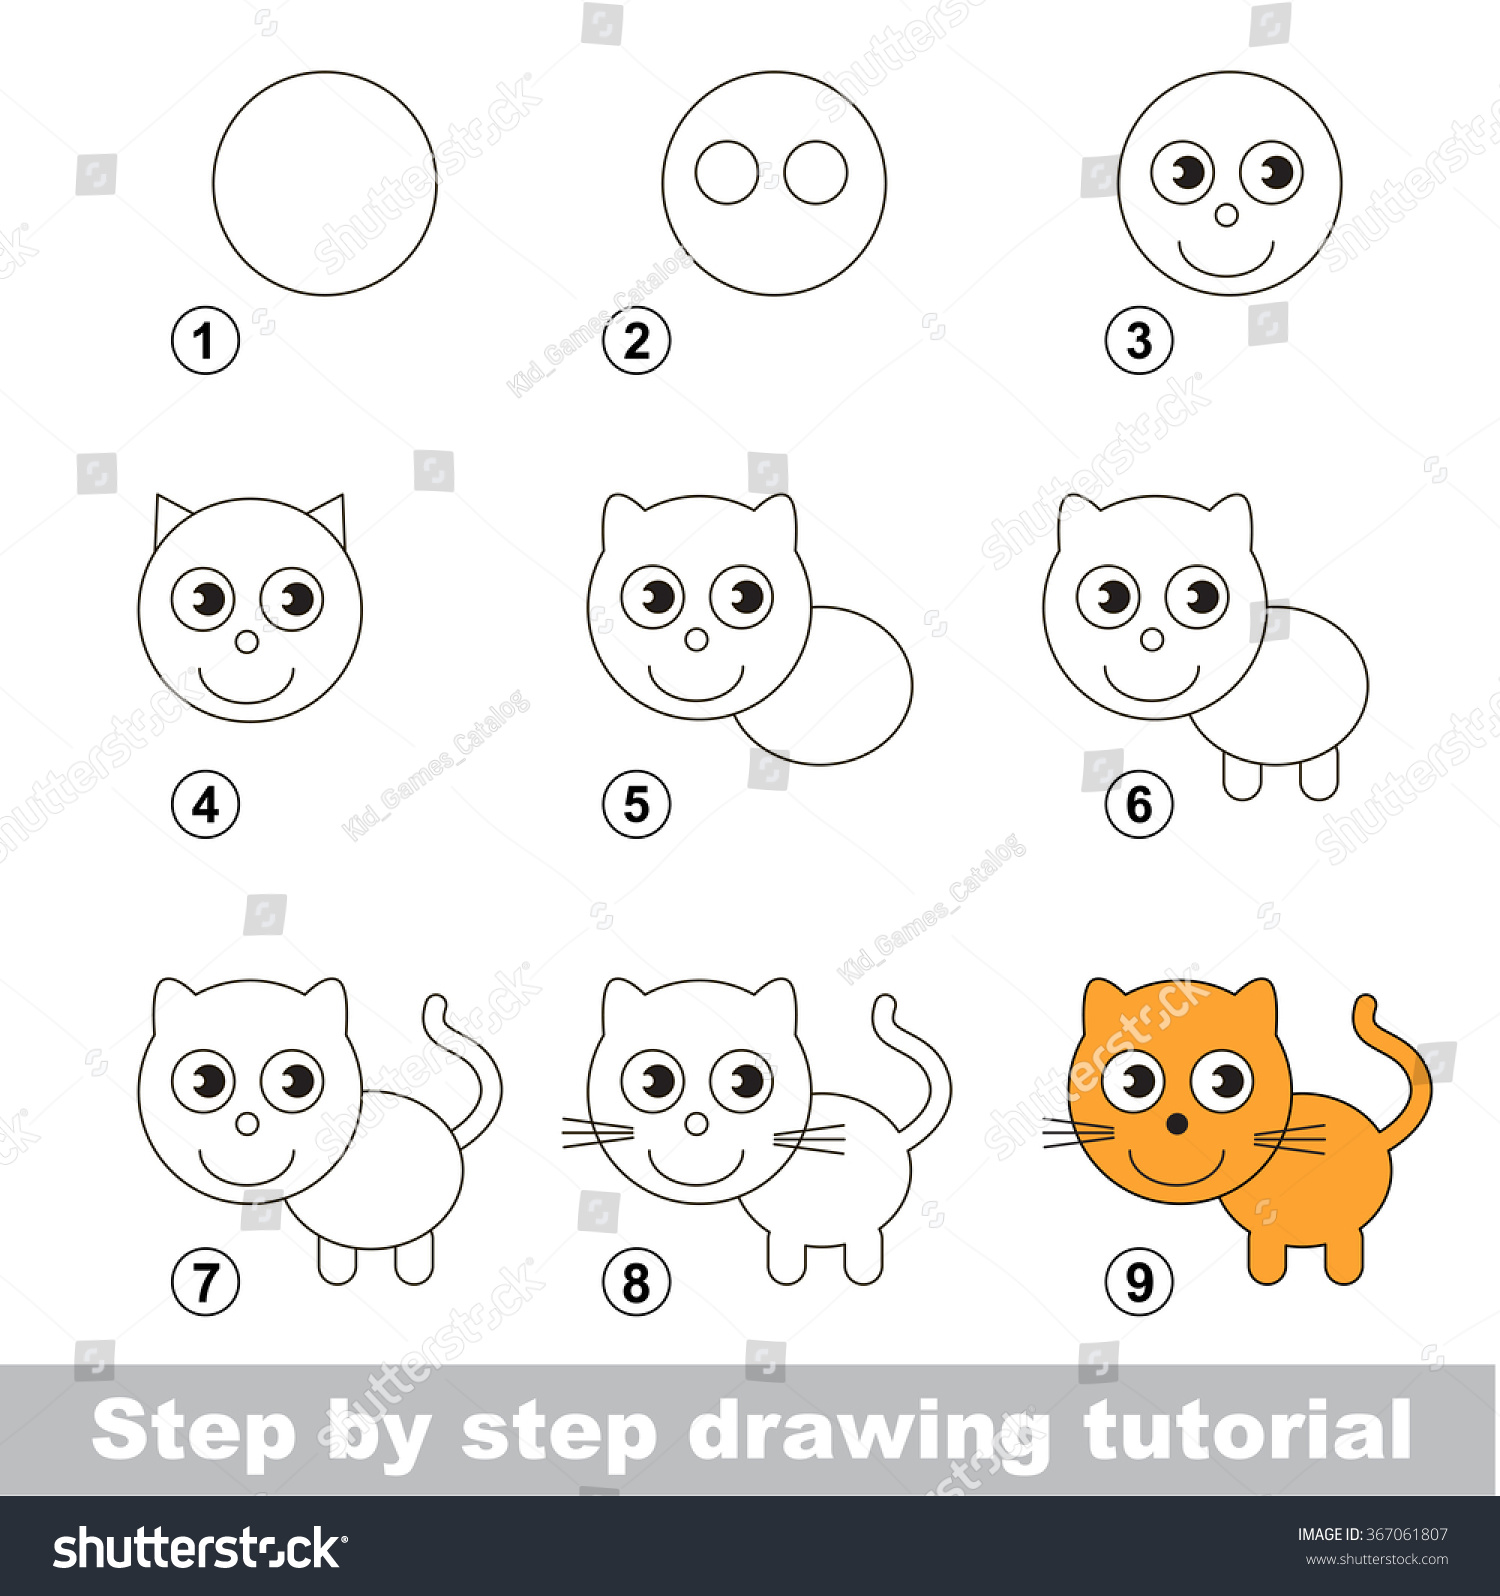 step by step drawing tutorial visual game for kids how to draw a small - Drawing For Small Kids